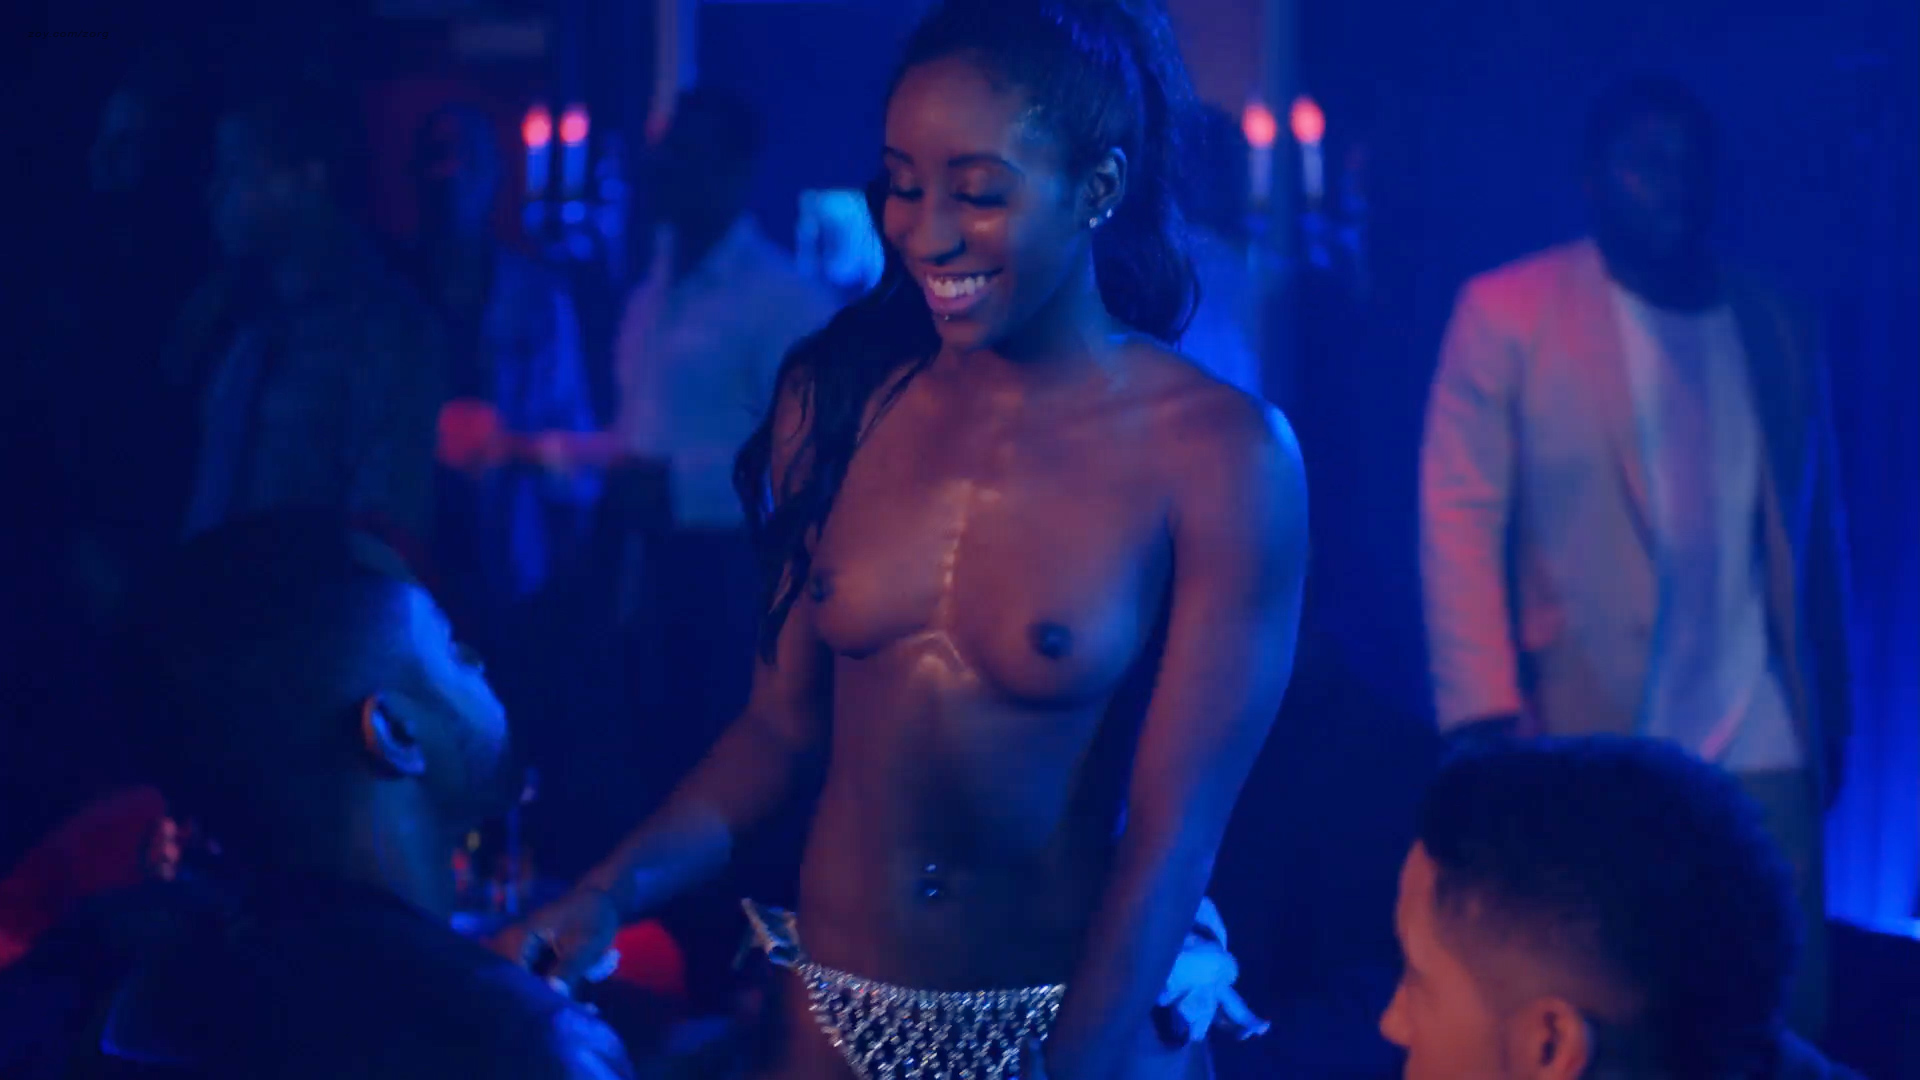 Dominique Perry nude sex and Nikki Vanderdyz nude - Insecure (2016) s1e8 HD 1080p (4)